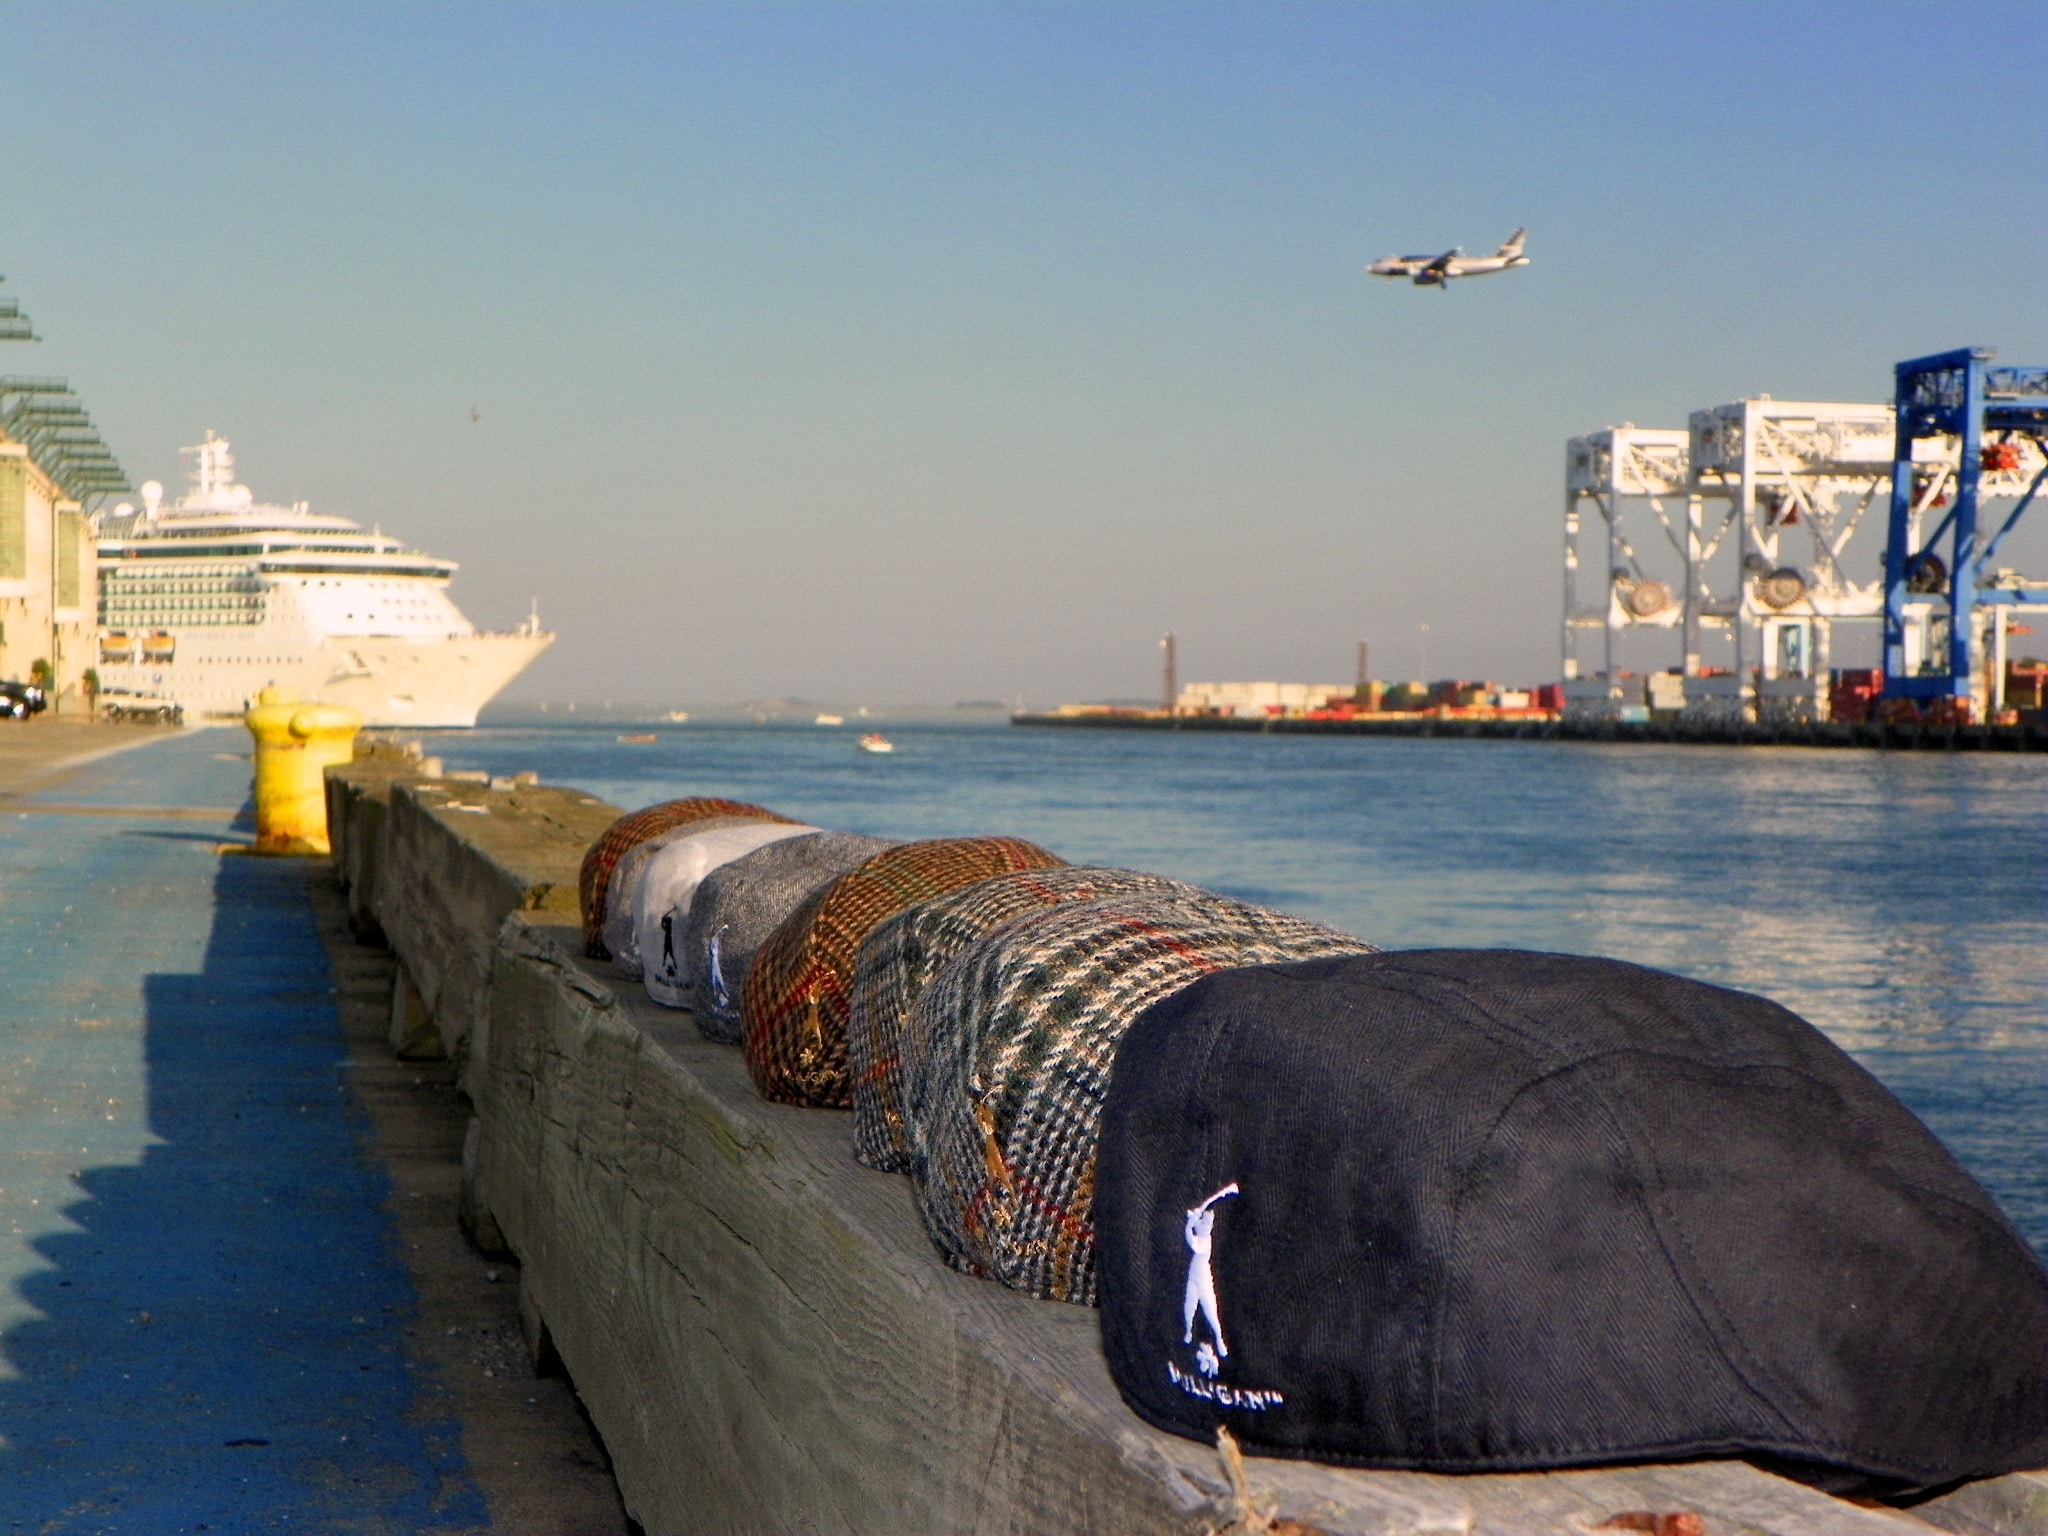 back side of hats with cruise ship and jet 2